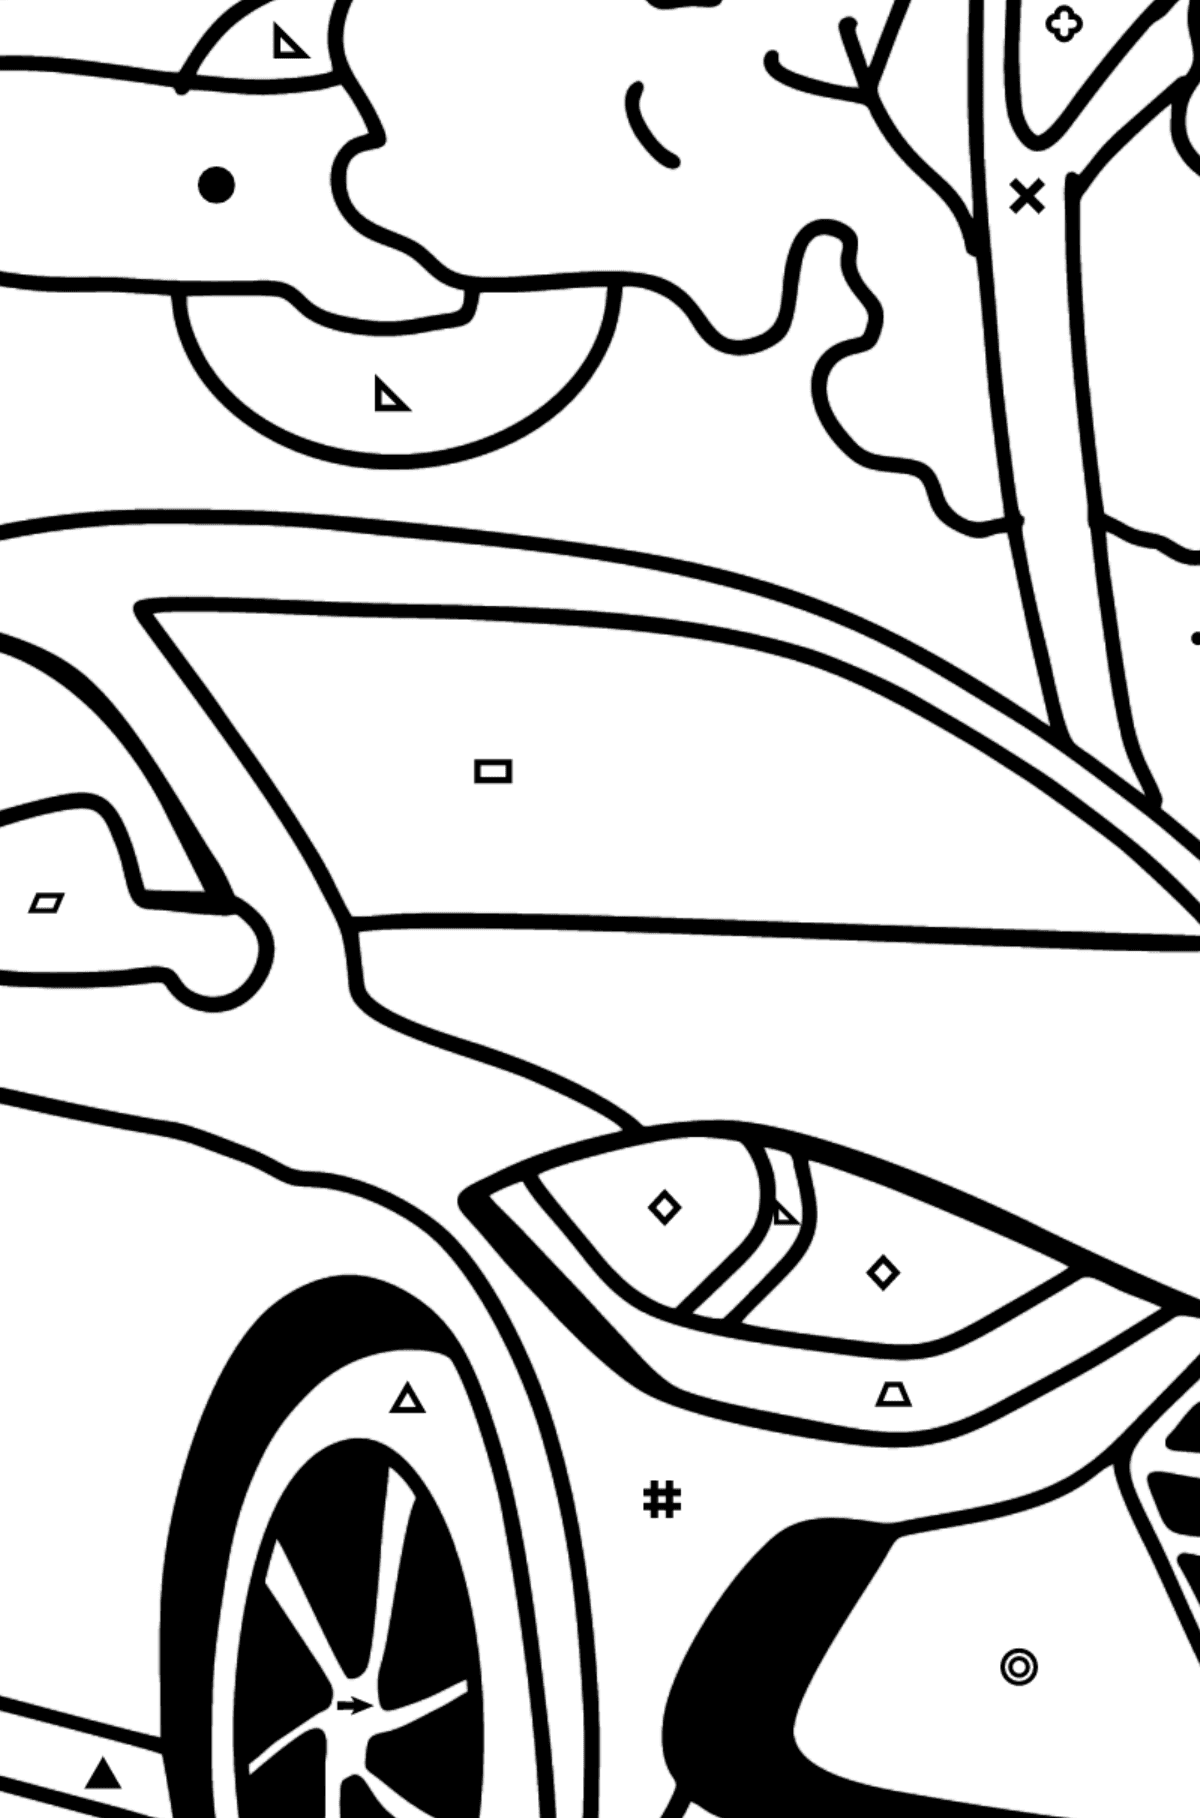 Hyundai car coloring page - Coloring by Symbols and Geometric Shapes for Kids